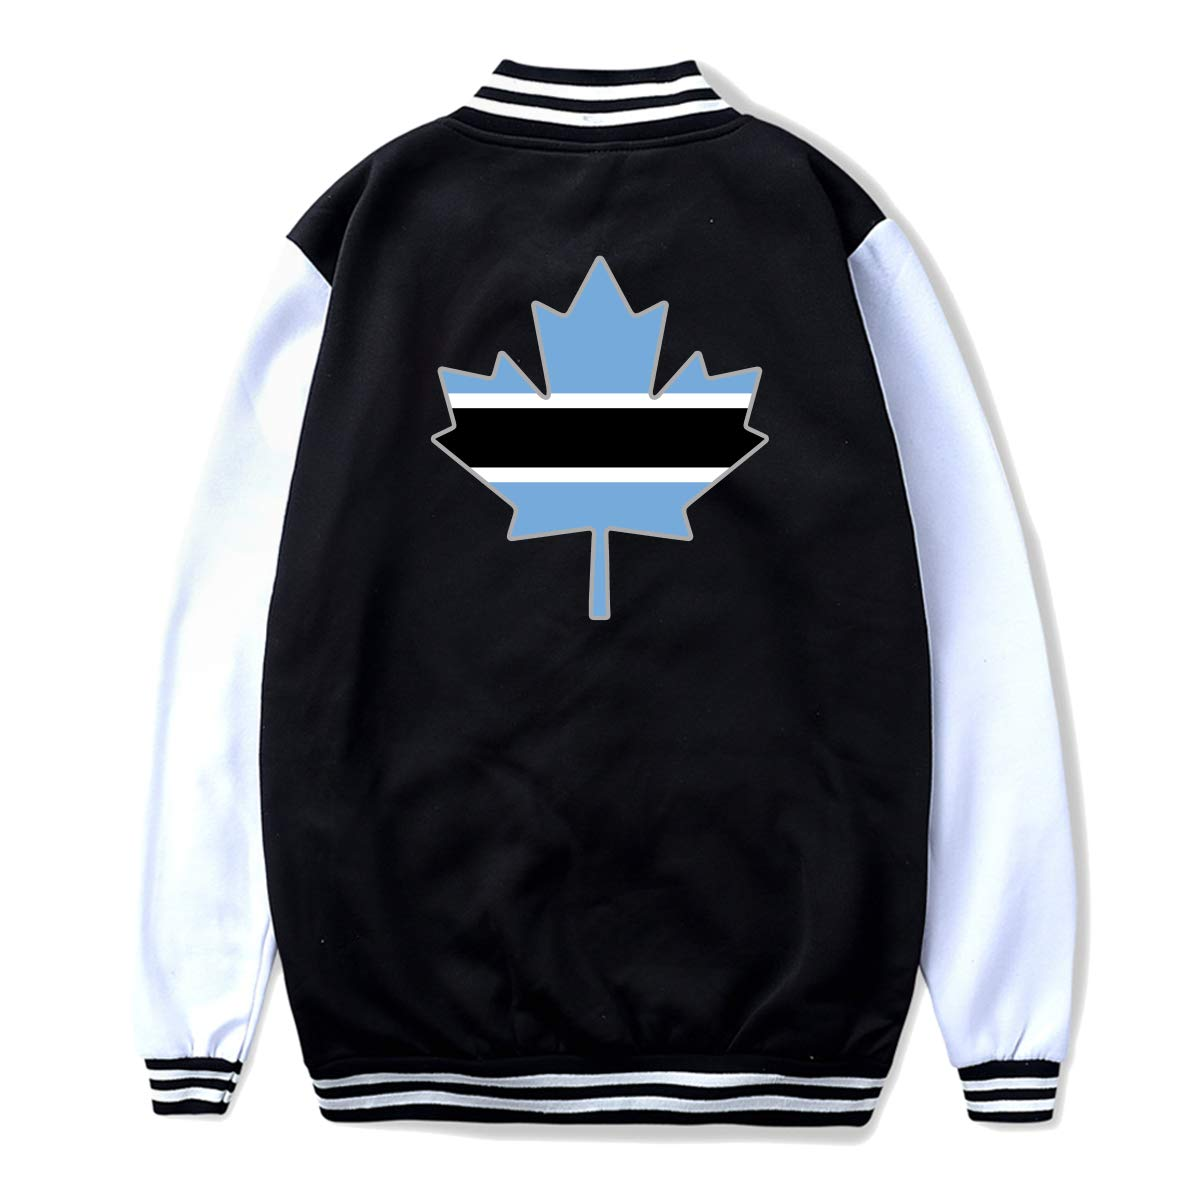 Unisex Teen Baseball Uniform Jacket Botswana Flag Canada Maple Leaf Hoodie Coat Sweater Sweatshirt Back Print